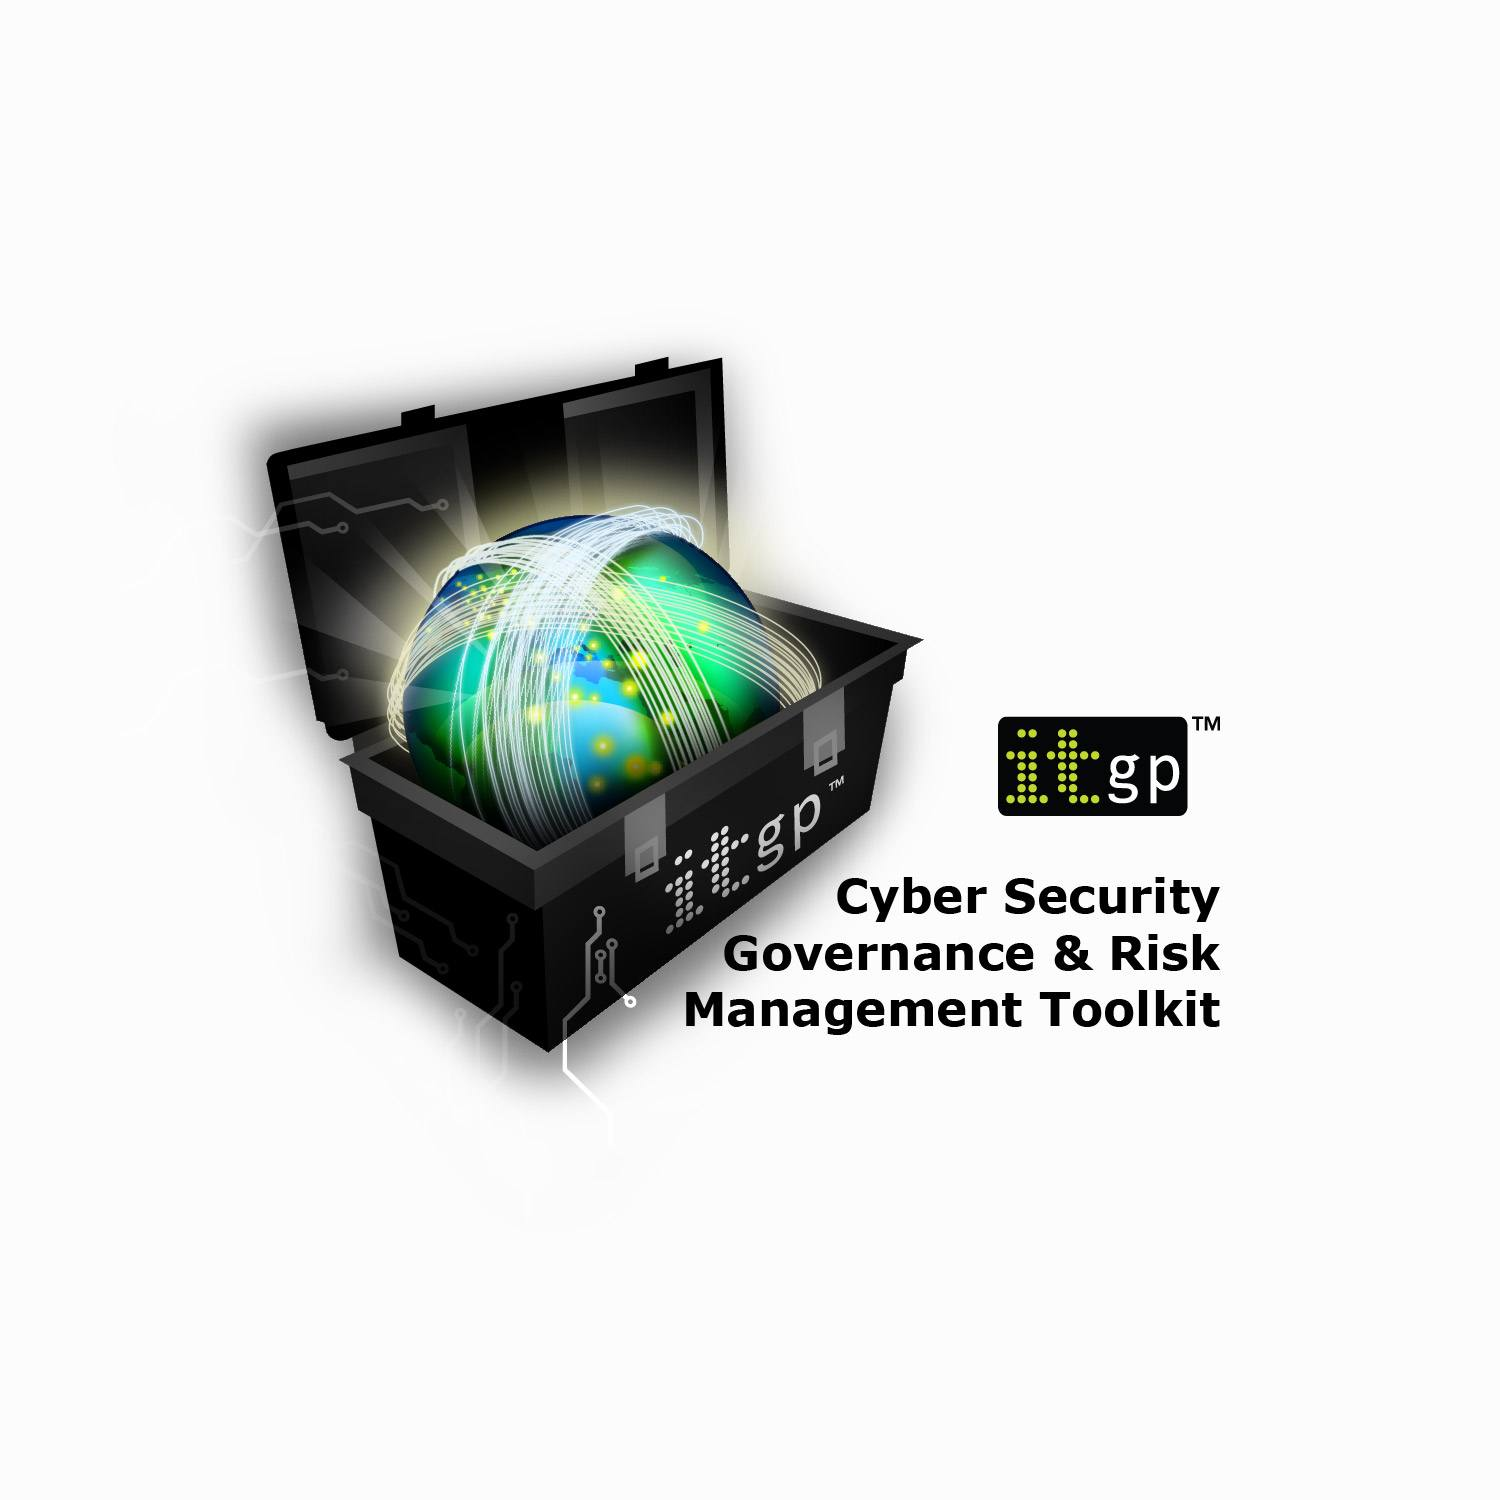 Cyber Security Governance and Risk Management Toolkit